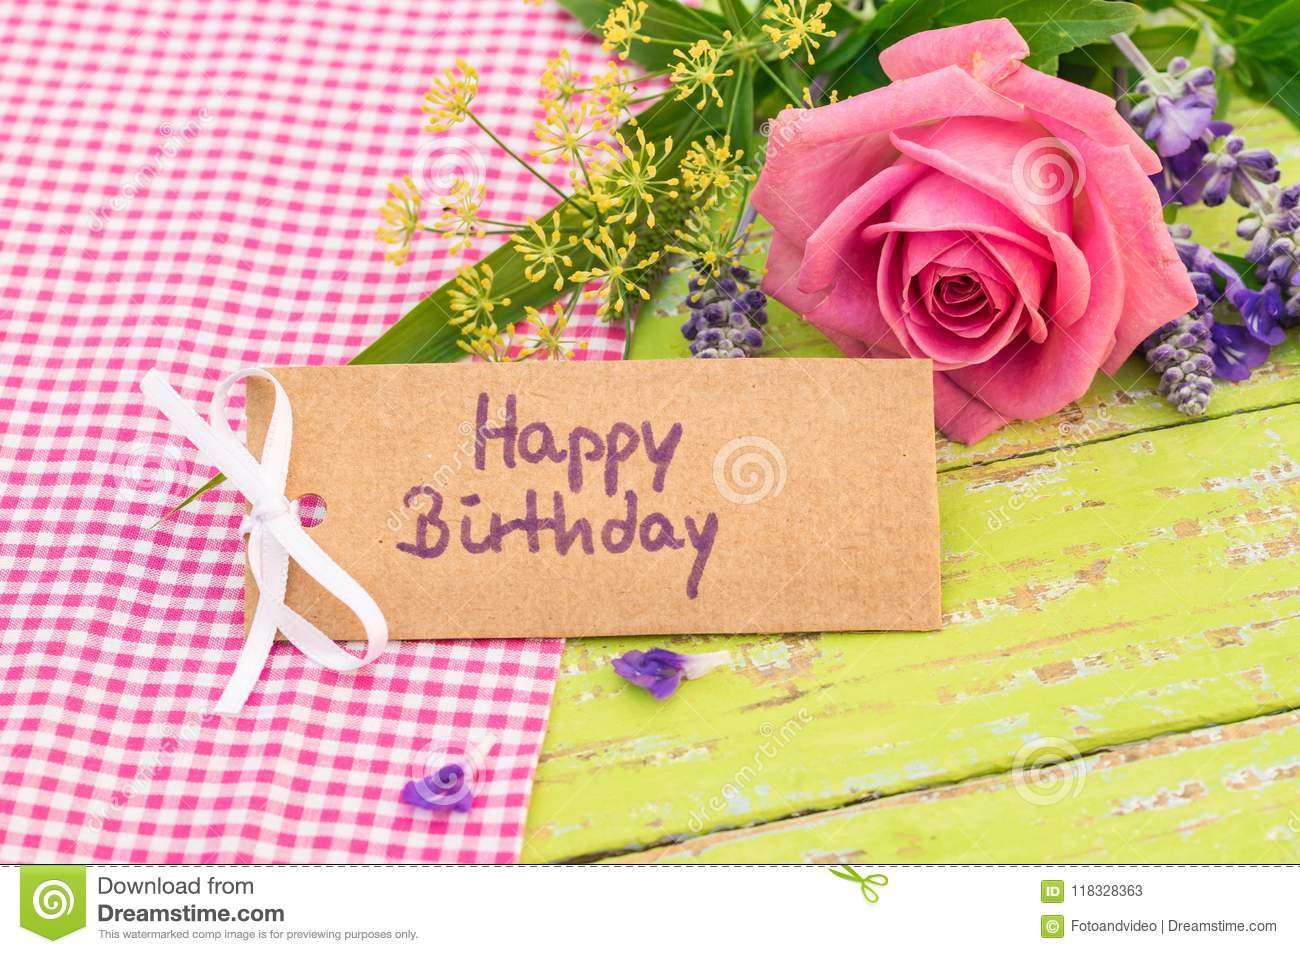 Beautiful Bunch Of Rose Flower And Happy Birthday Greeting Card On Wooden Background